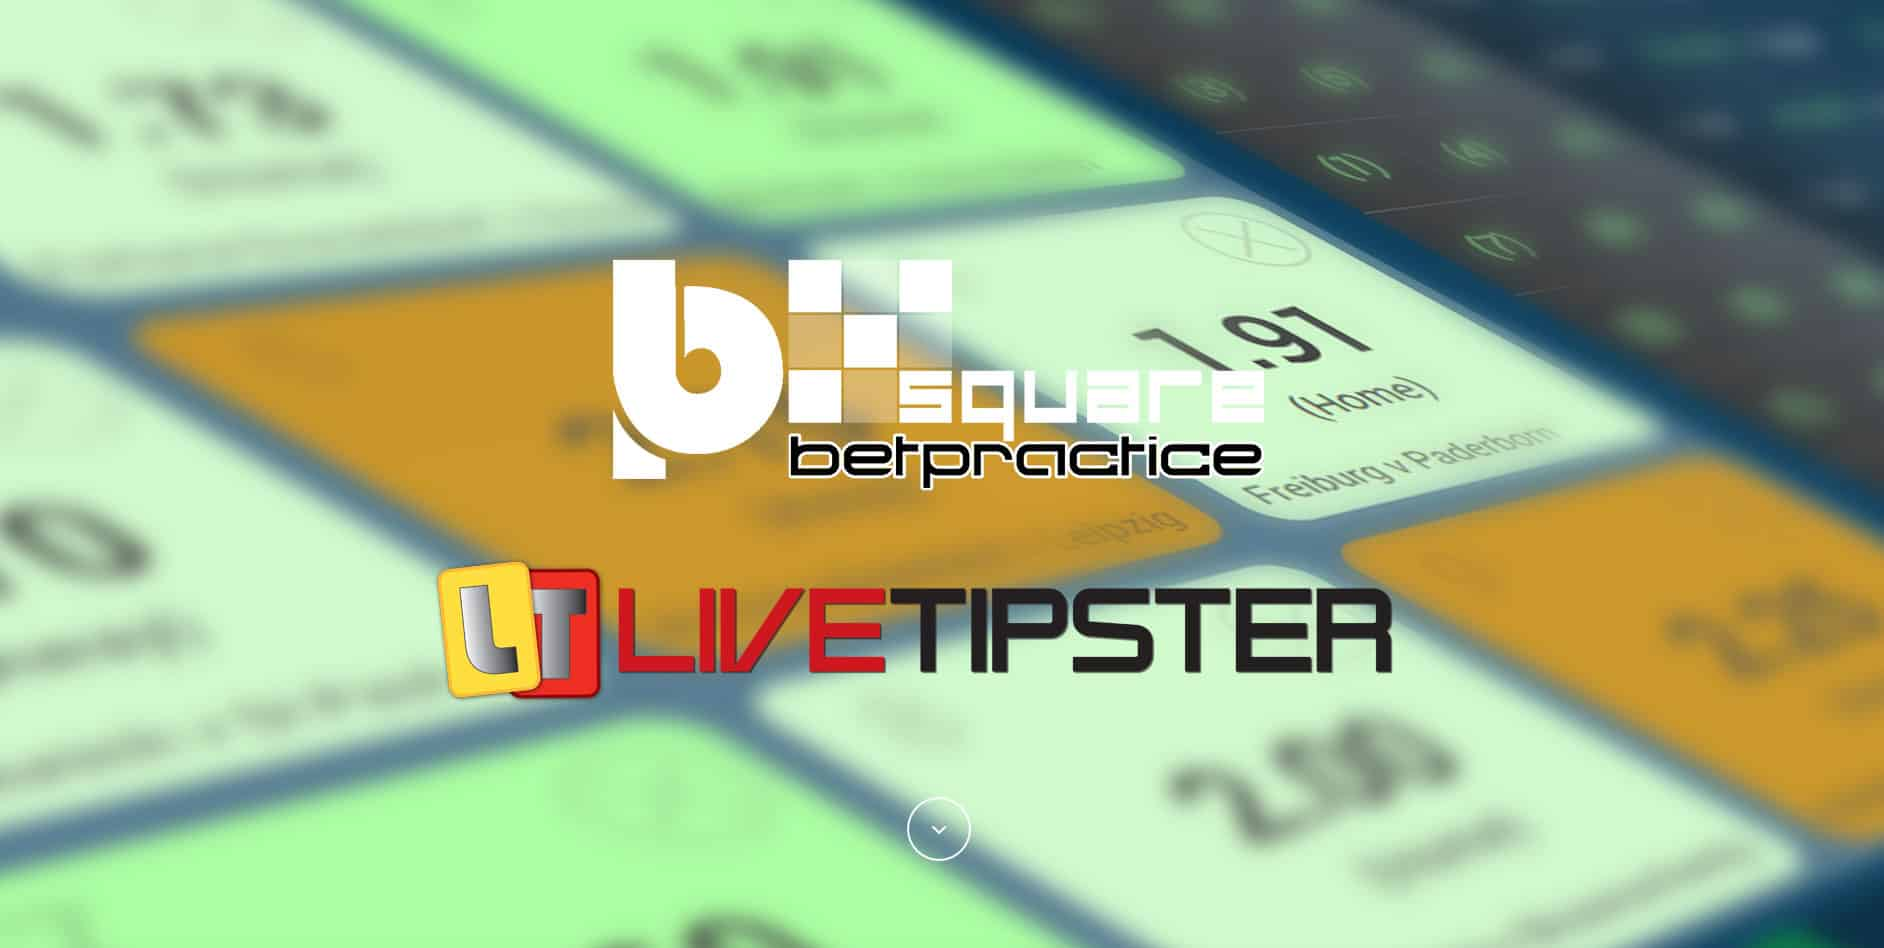 betpractice livetipster